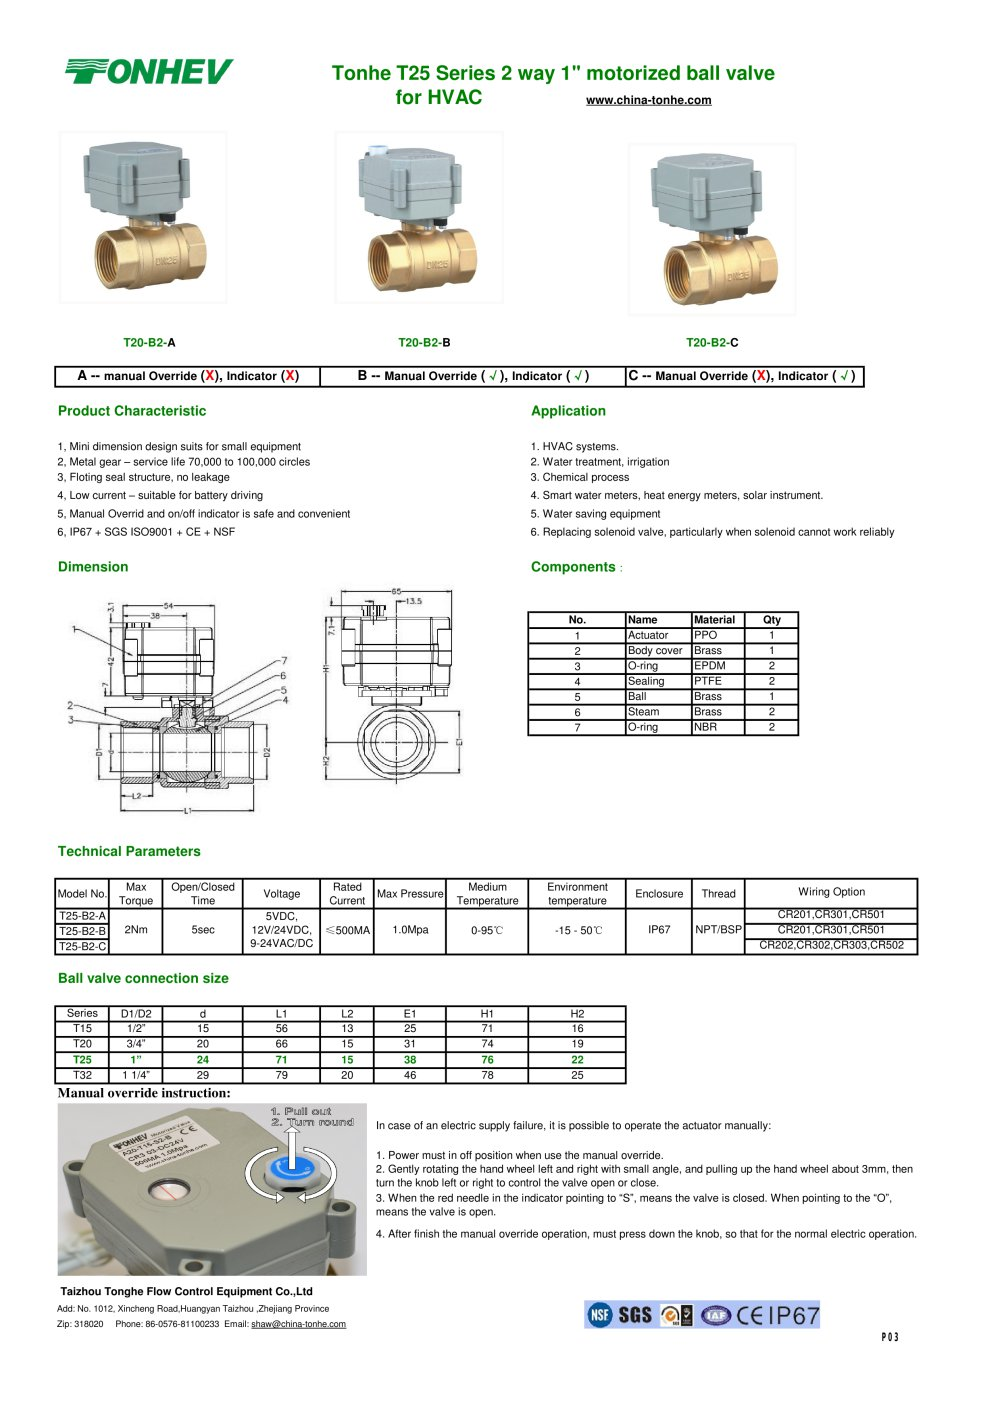 Tonhe T25 Series 2 Way 1 Motorized Ball Valve For Hvac Taizhou 3 Solenoid Wiring Diagram Pages